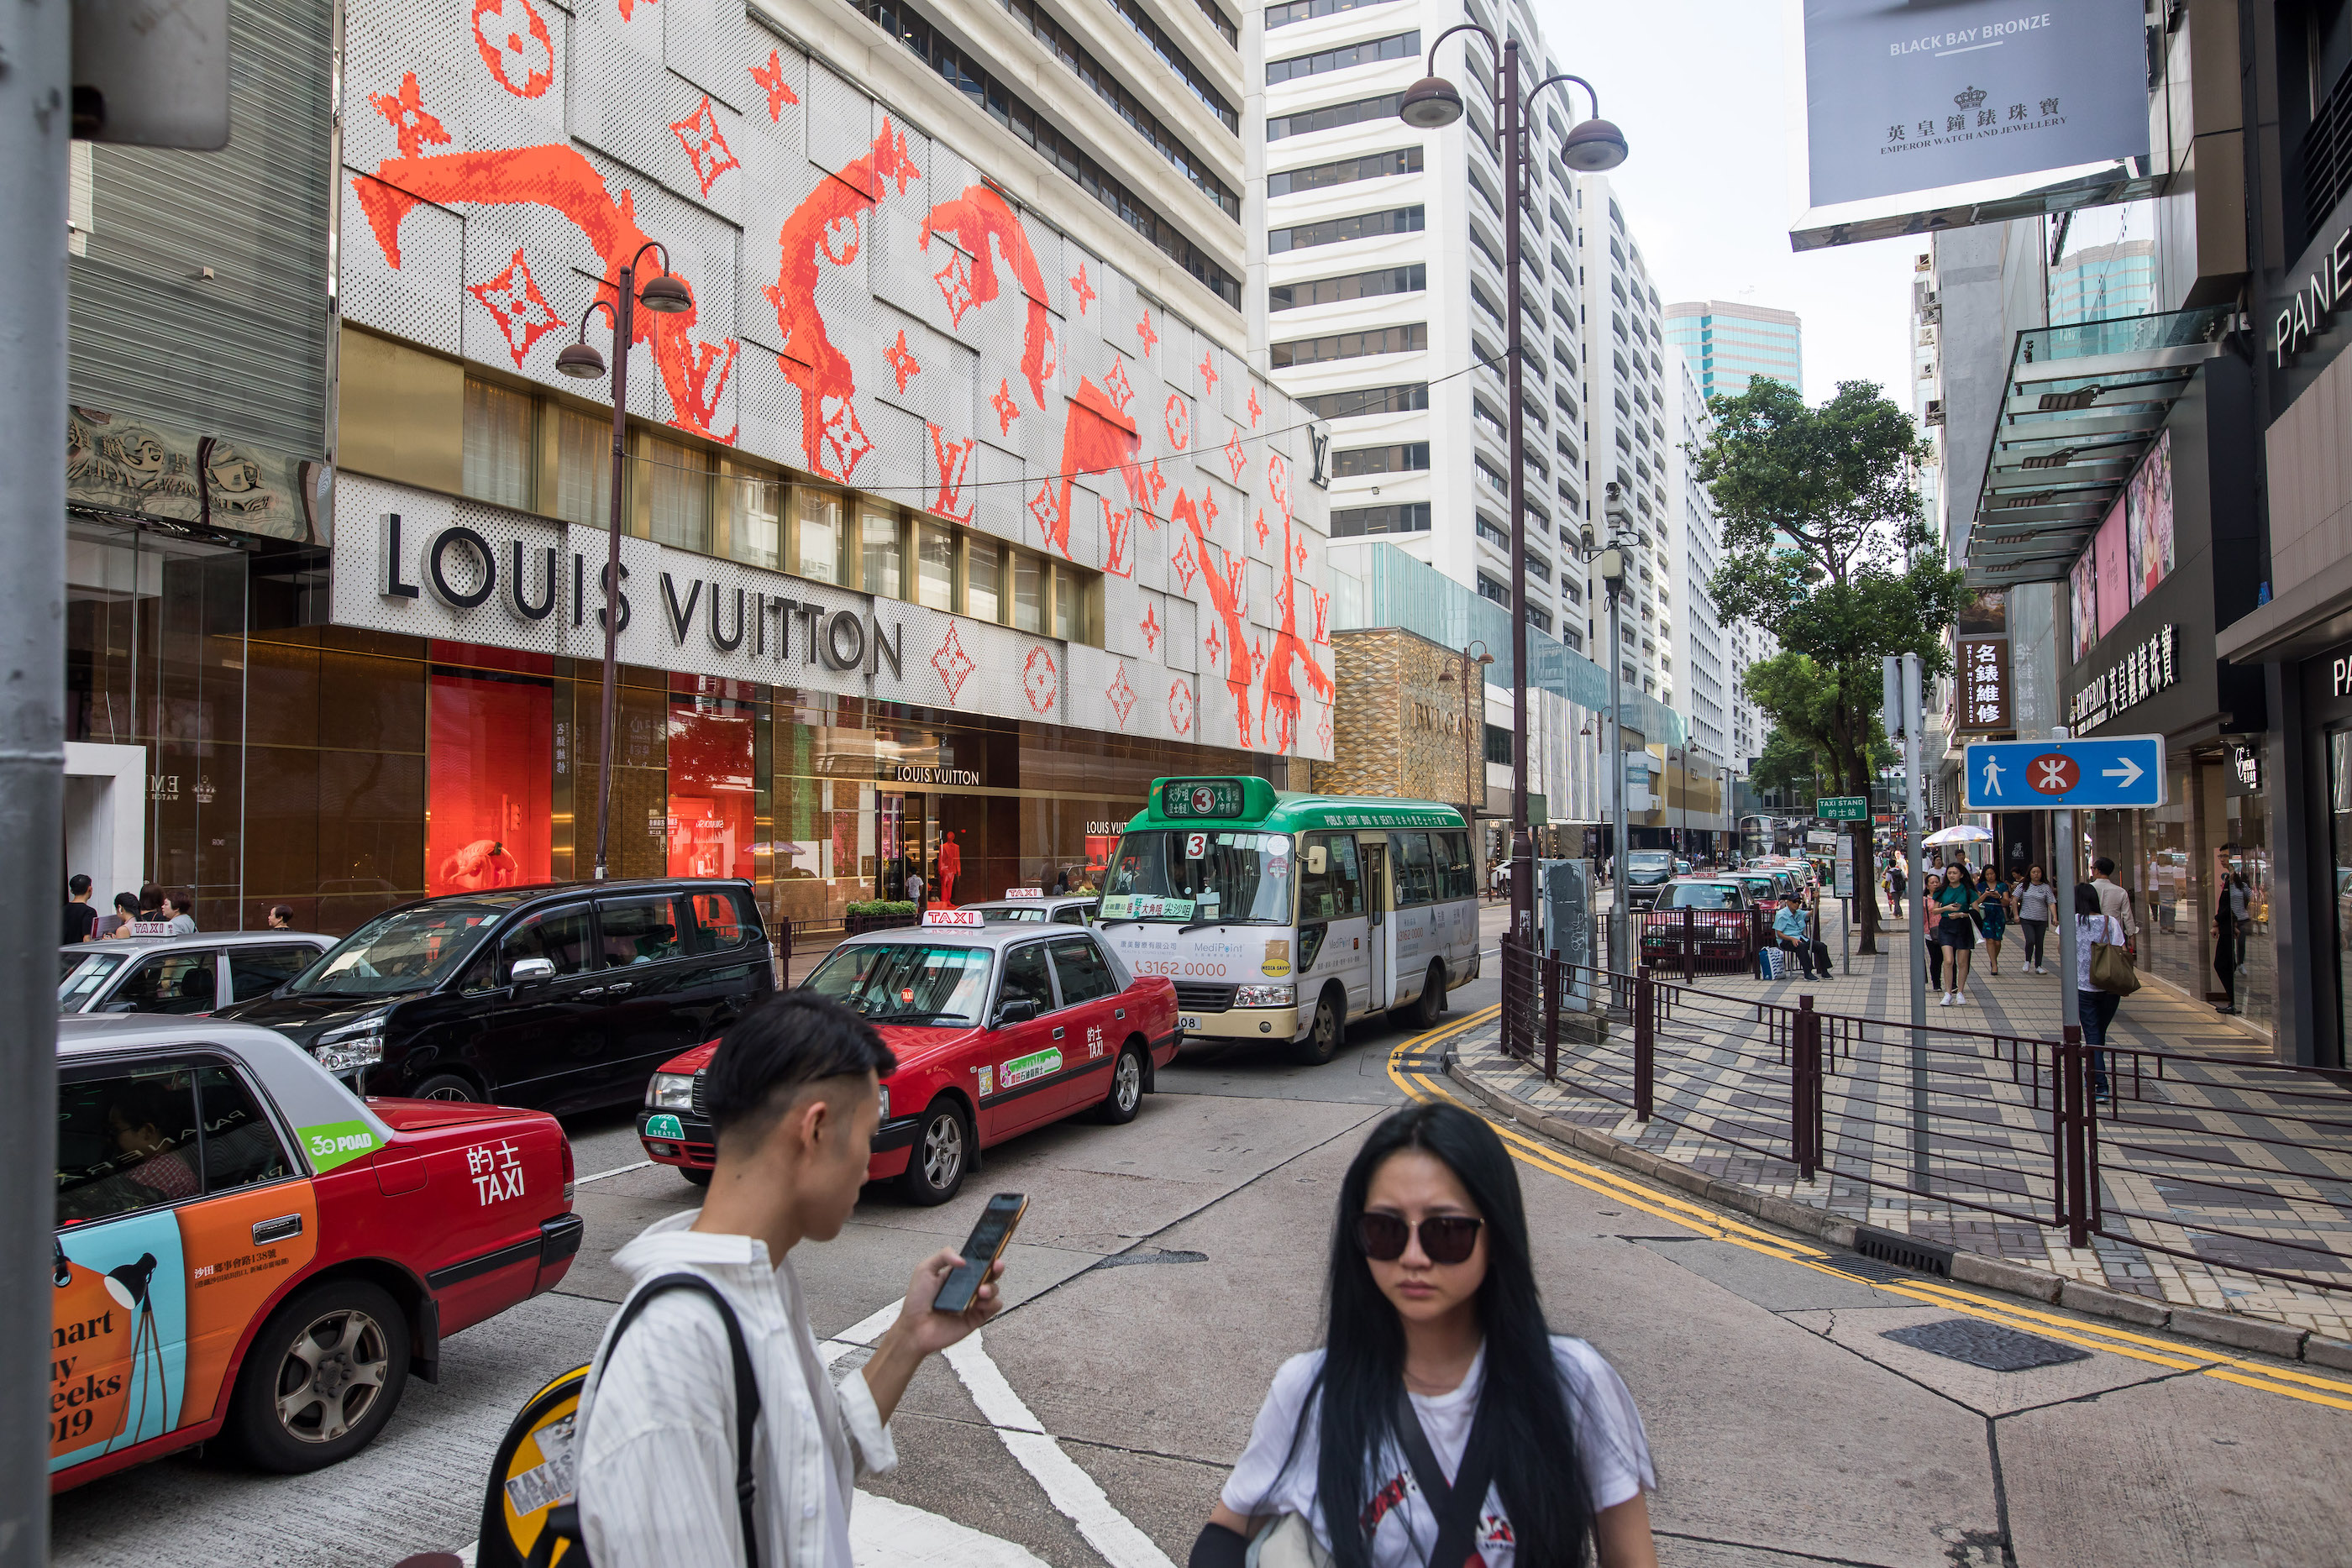 Louis Vuitton on Canton Road in the Tsim Sha Tsui district of Hong Kong, China.